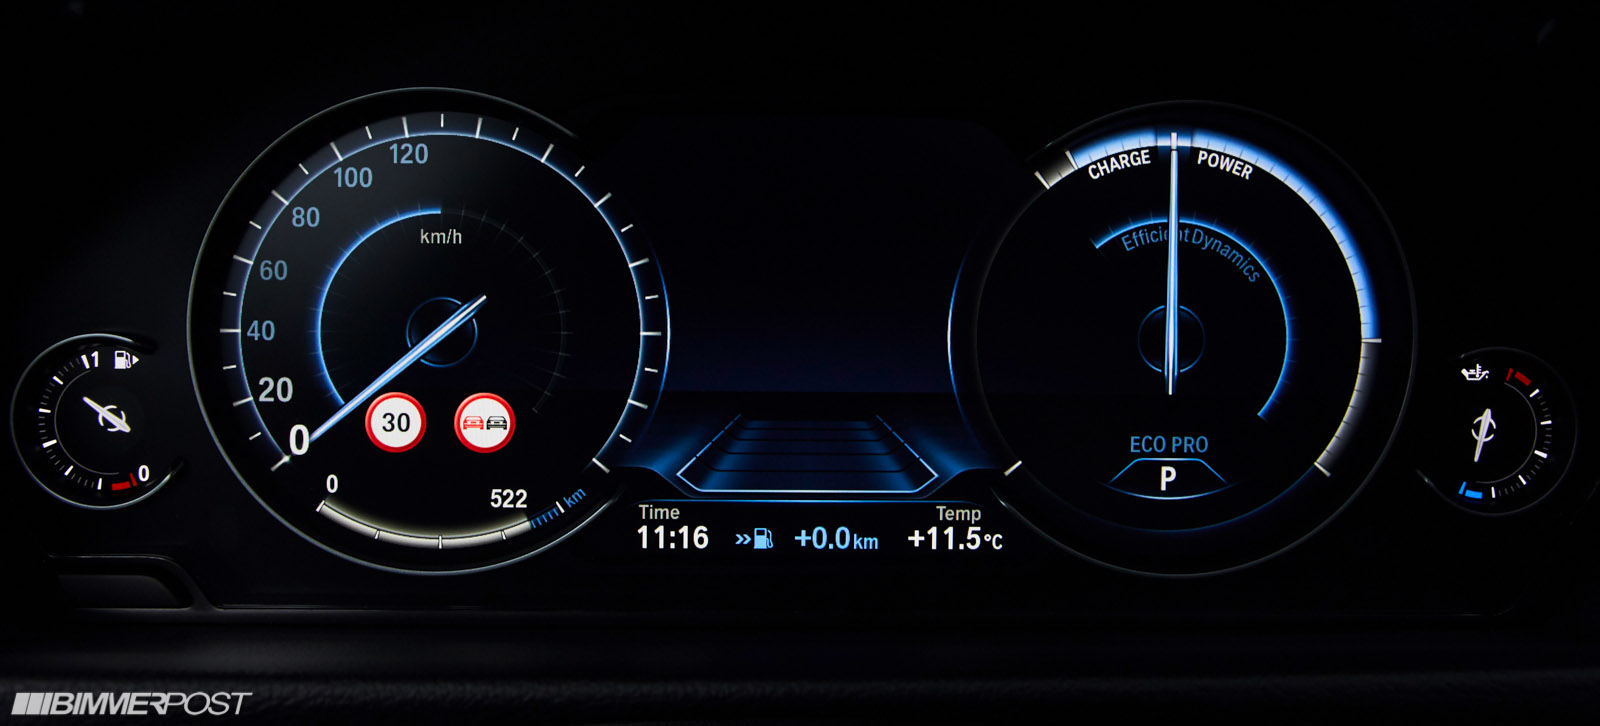 4 Series Lci Brings Optional Digital Instrument Cluster